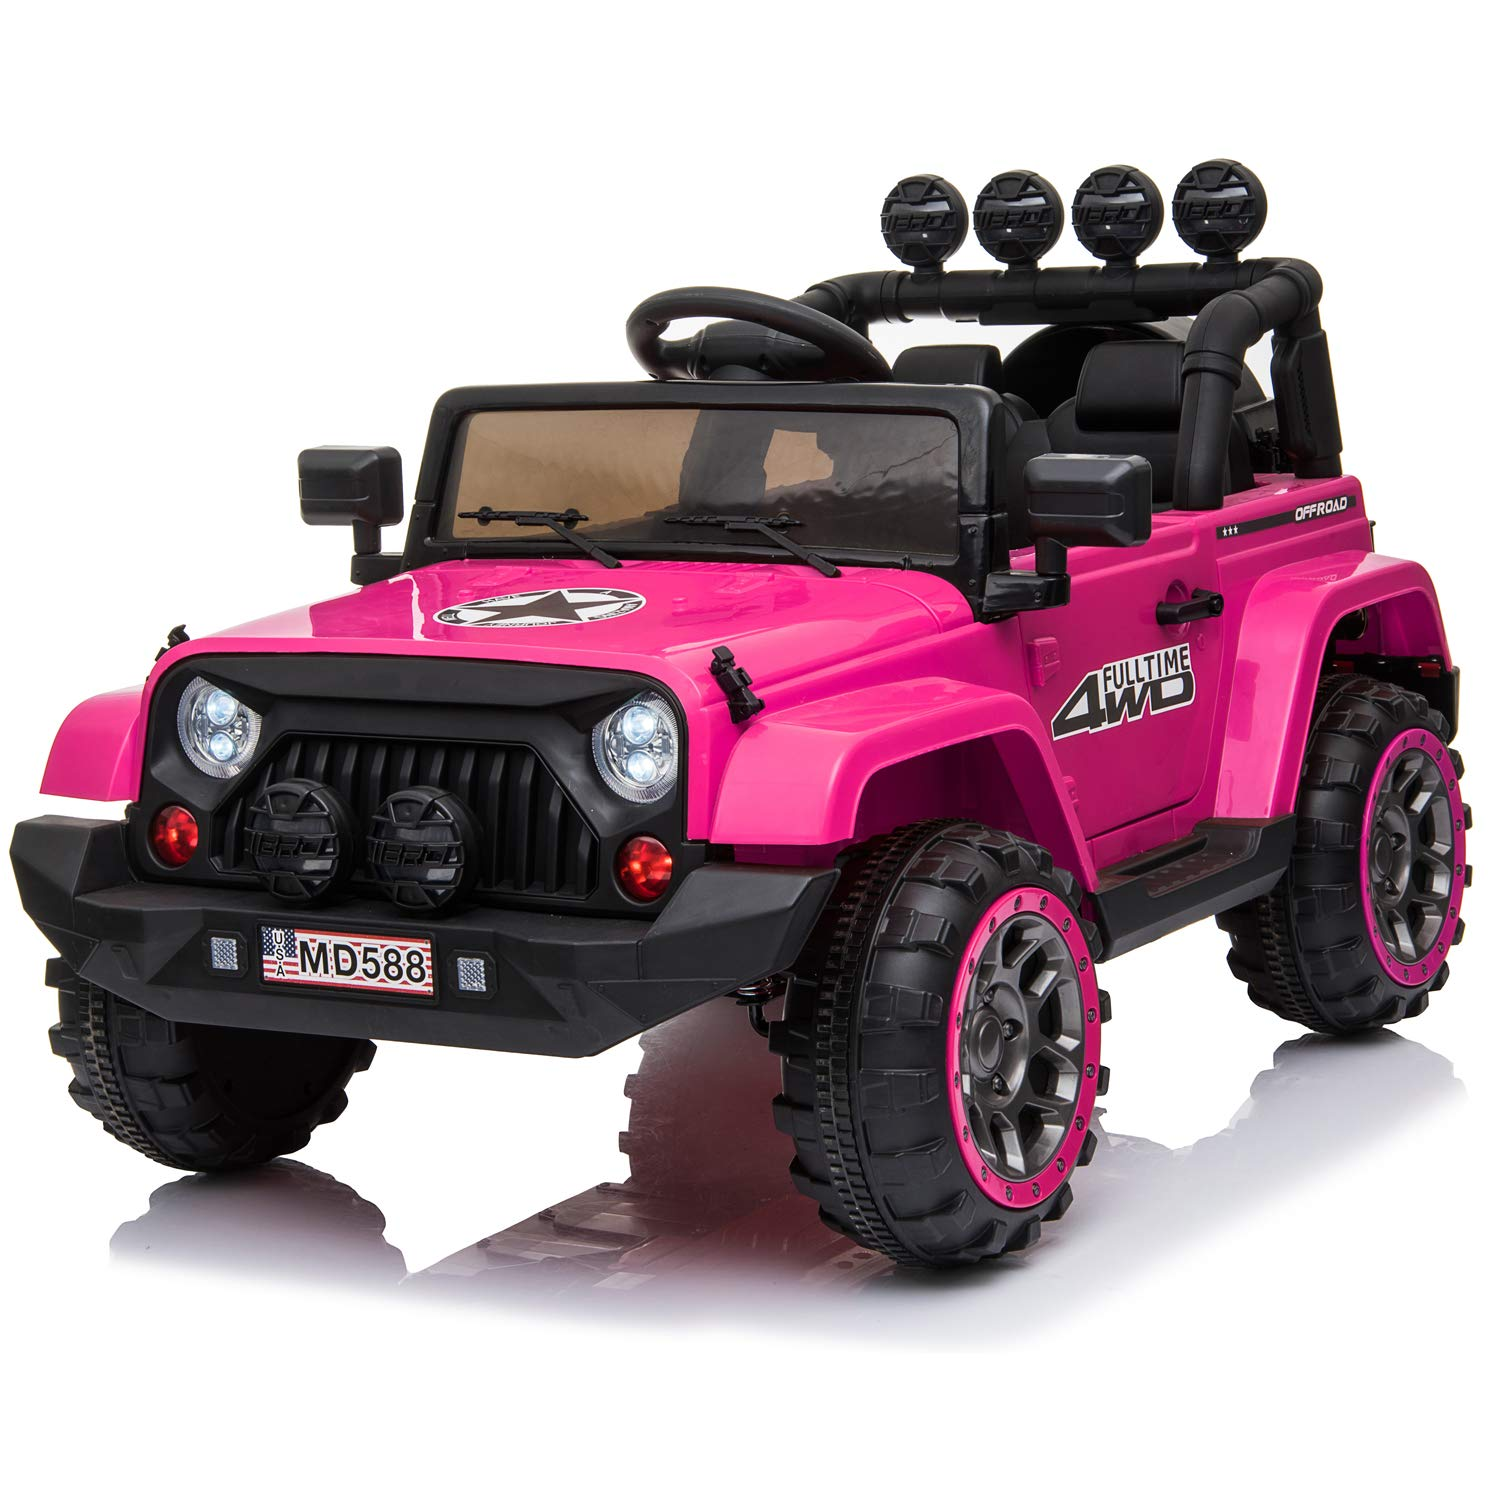 12V Kids Electric Ride On Car with 2.4G Remote Control, 2 Motors, Openable Doors, LED Light, USB Port, Spring Suspension and Facelift Grille - Pink